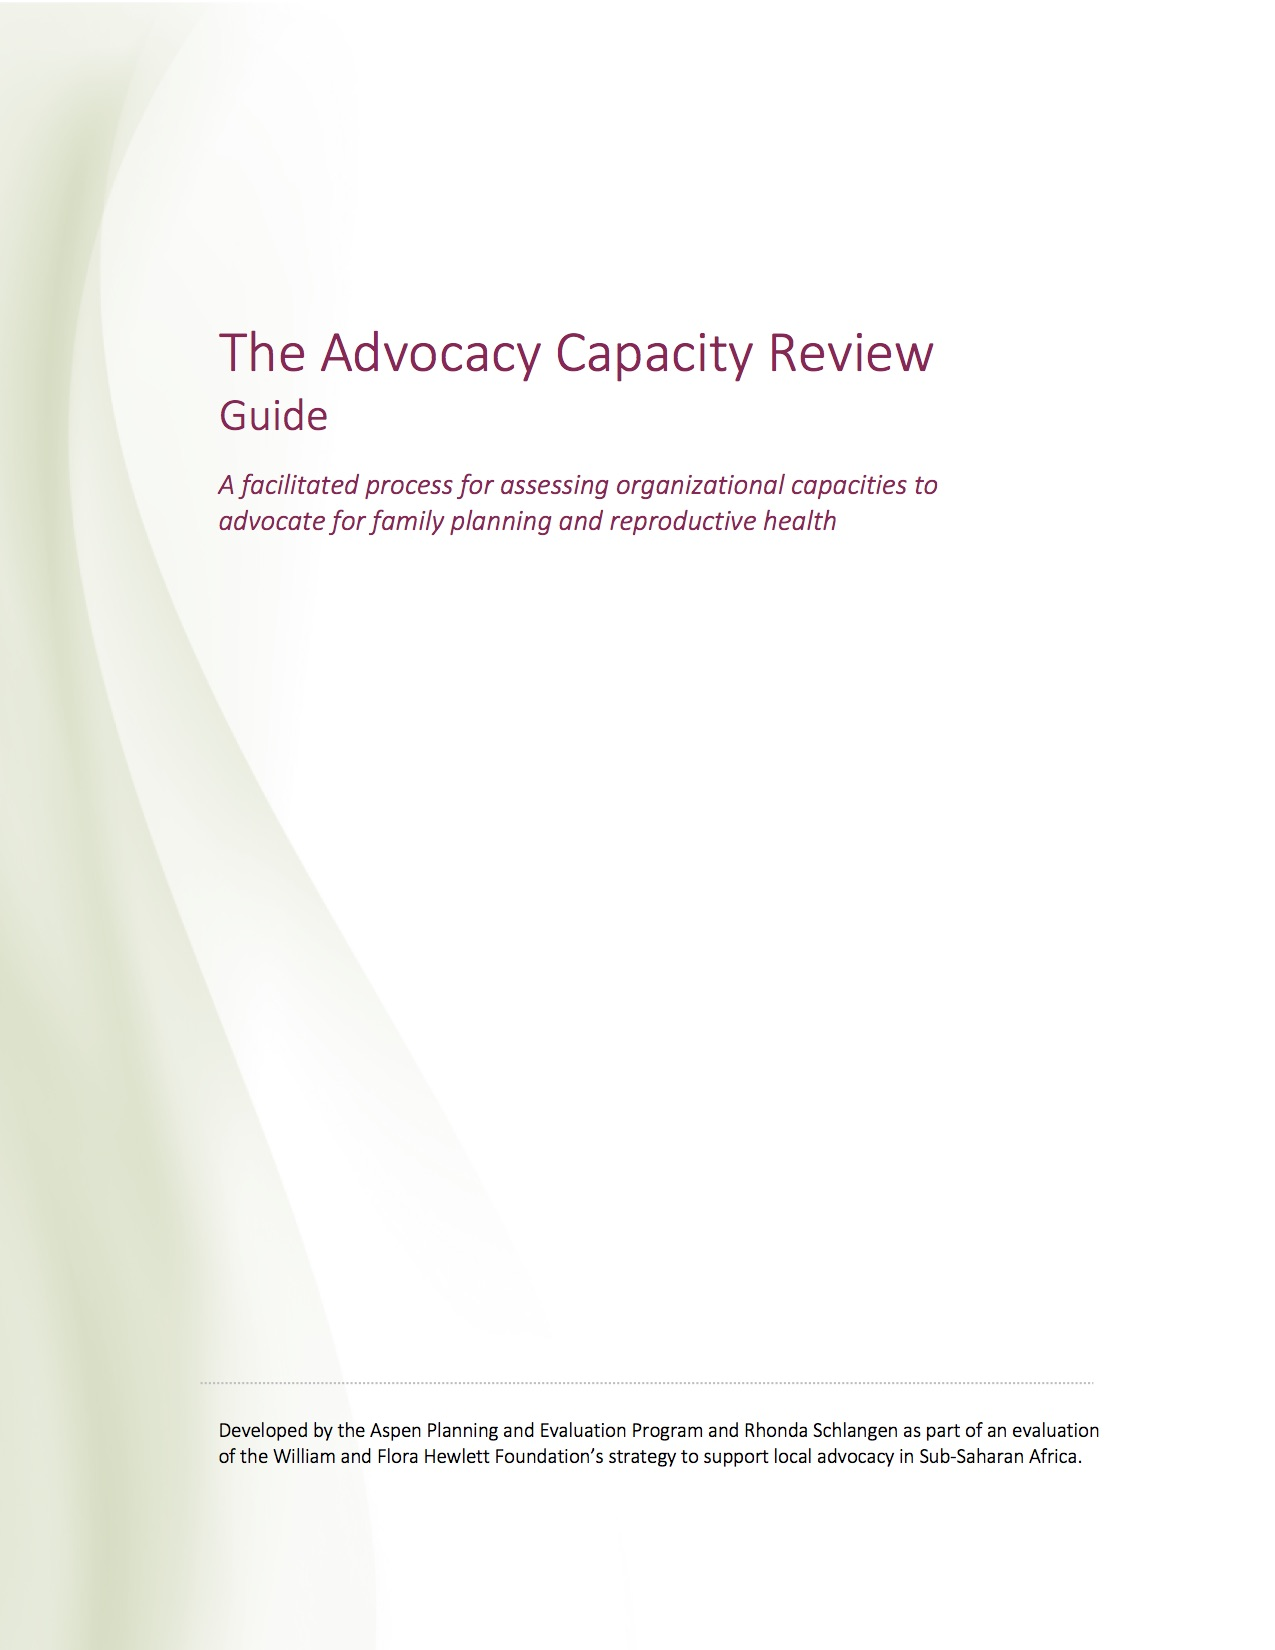 The Advocacy Capacity Review: Guide